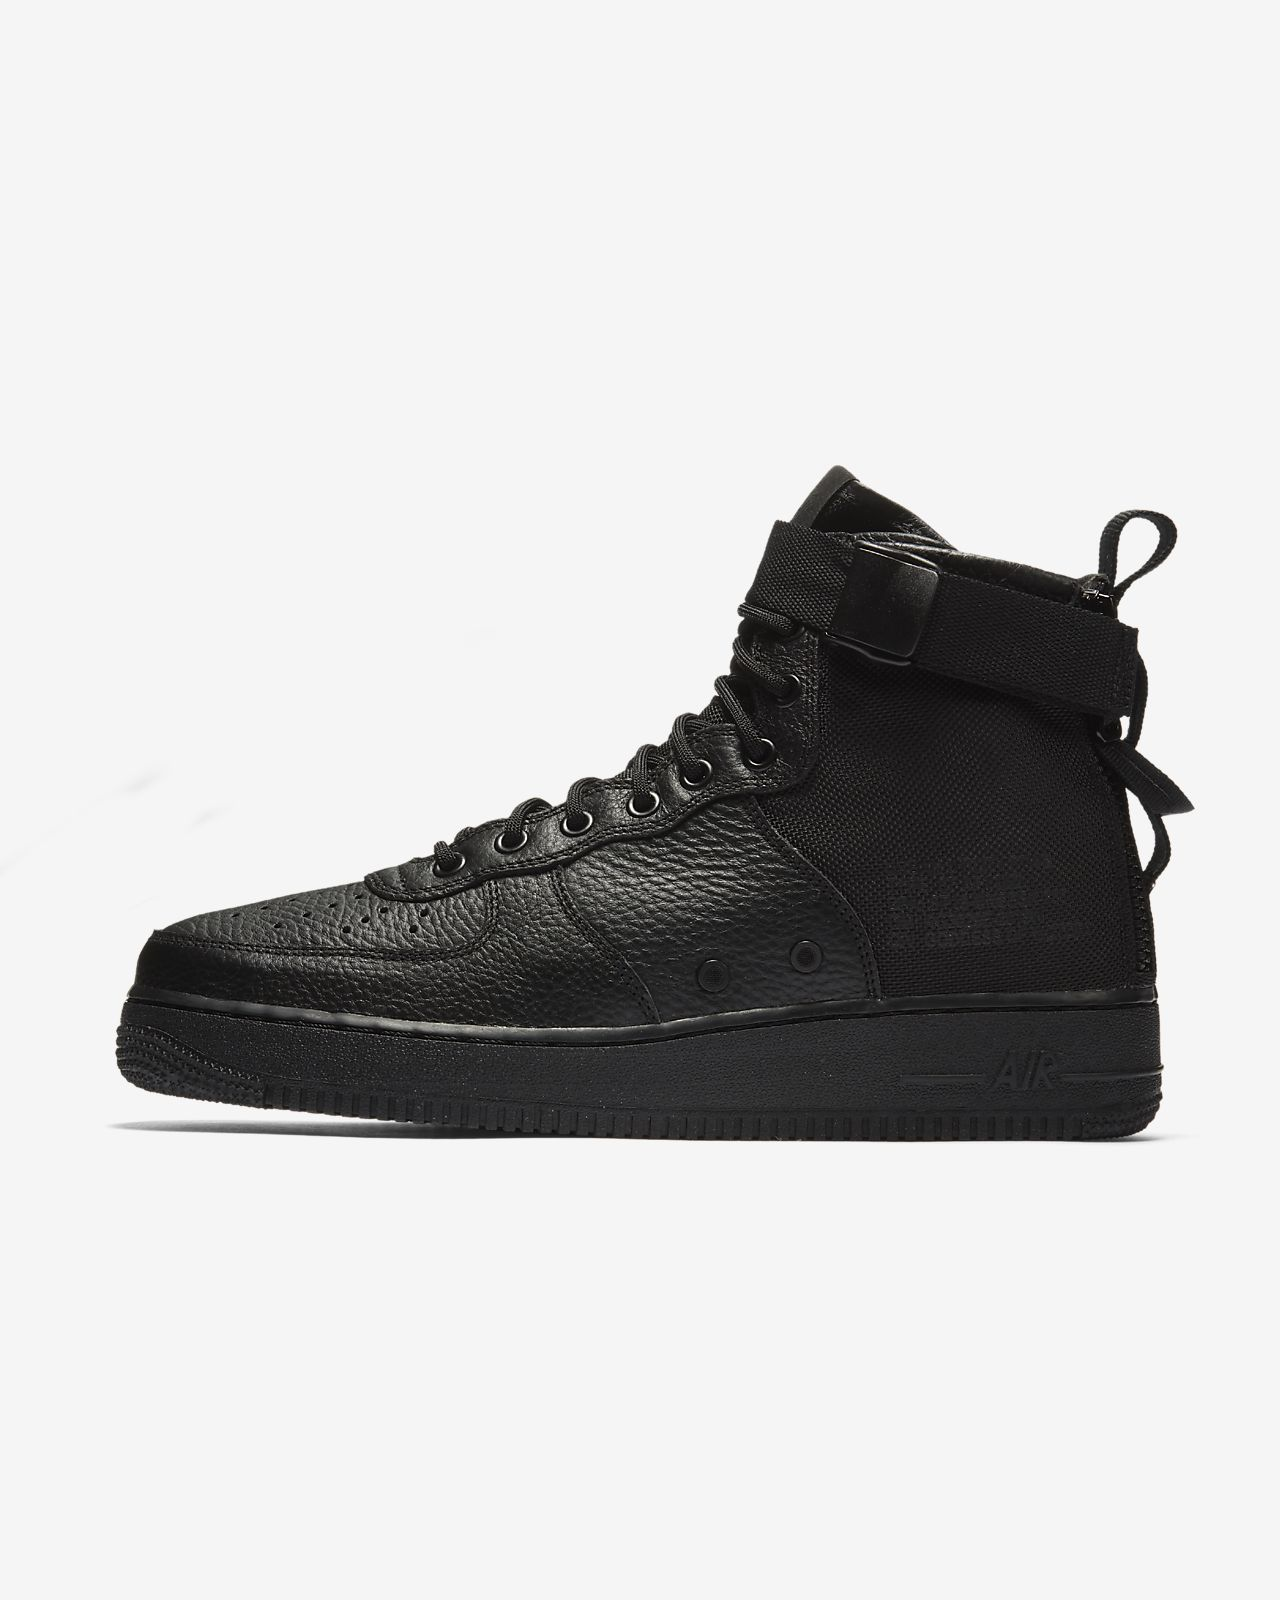 Nike SF Air Force 1 SE Premium Women's Lifestyle Shoes Black/Grey wX3410H